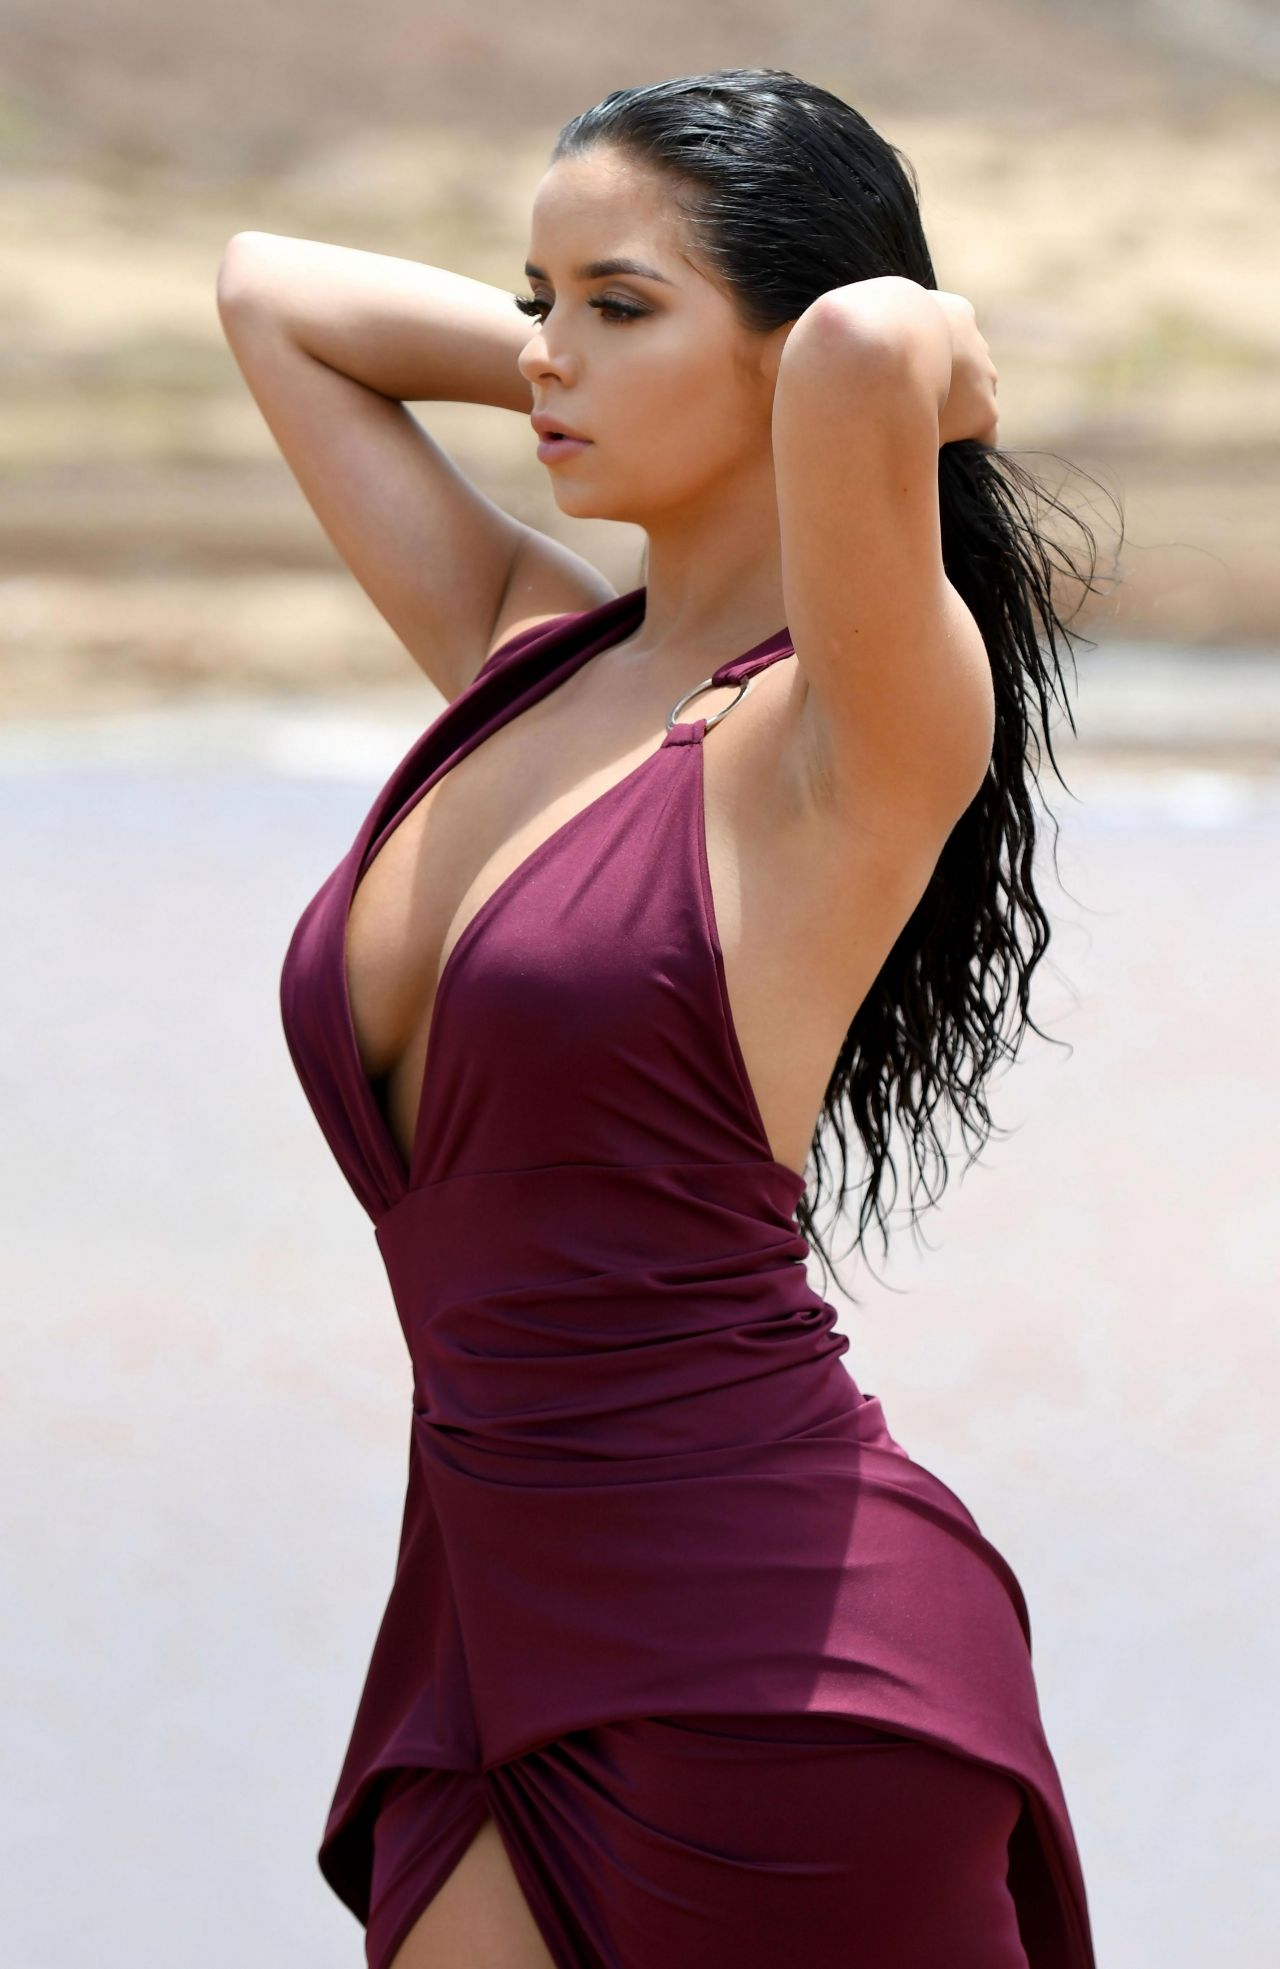 Demi Rose Mawby Fashion Photoshoot In Cape Verde 08 21 2017